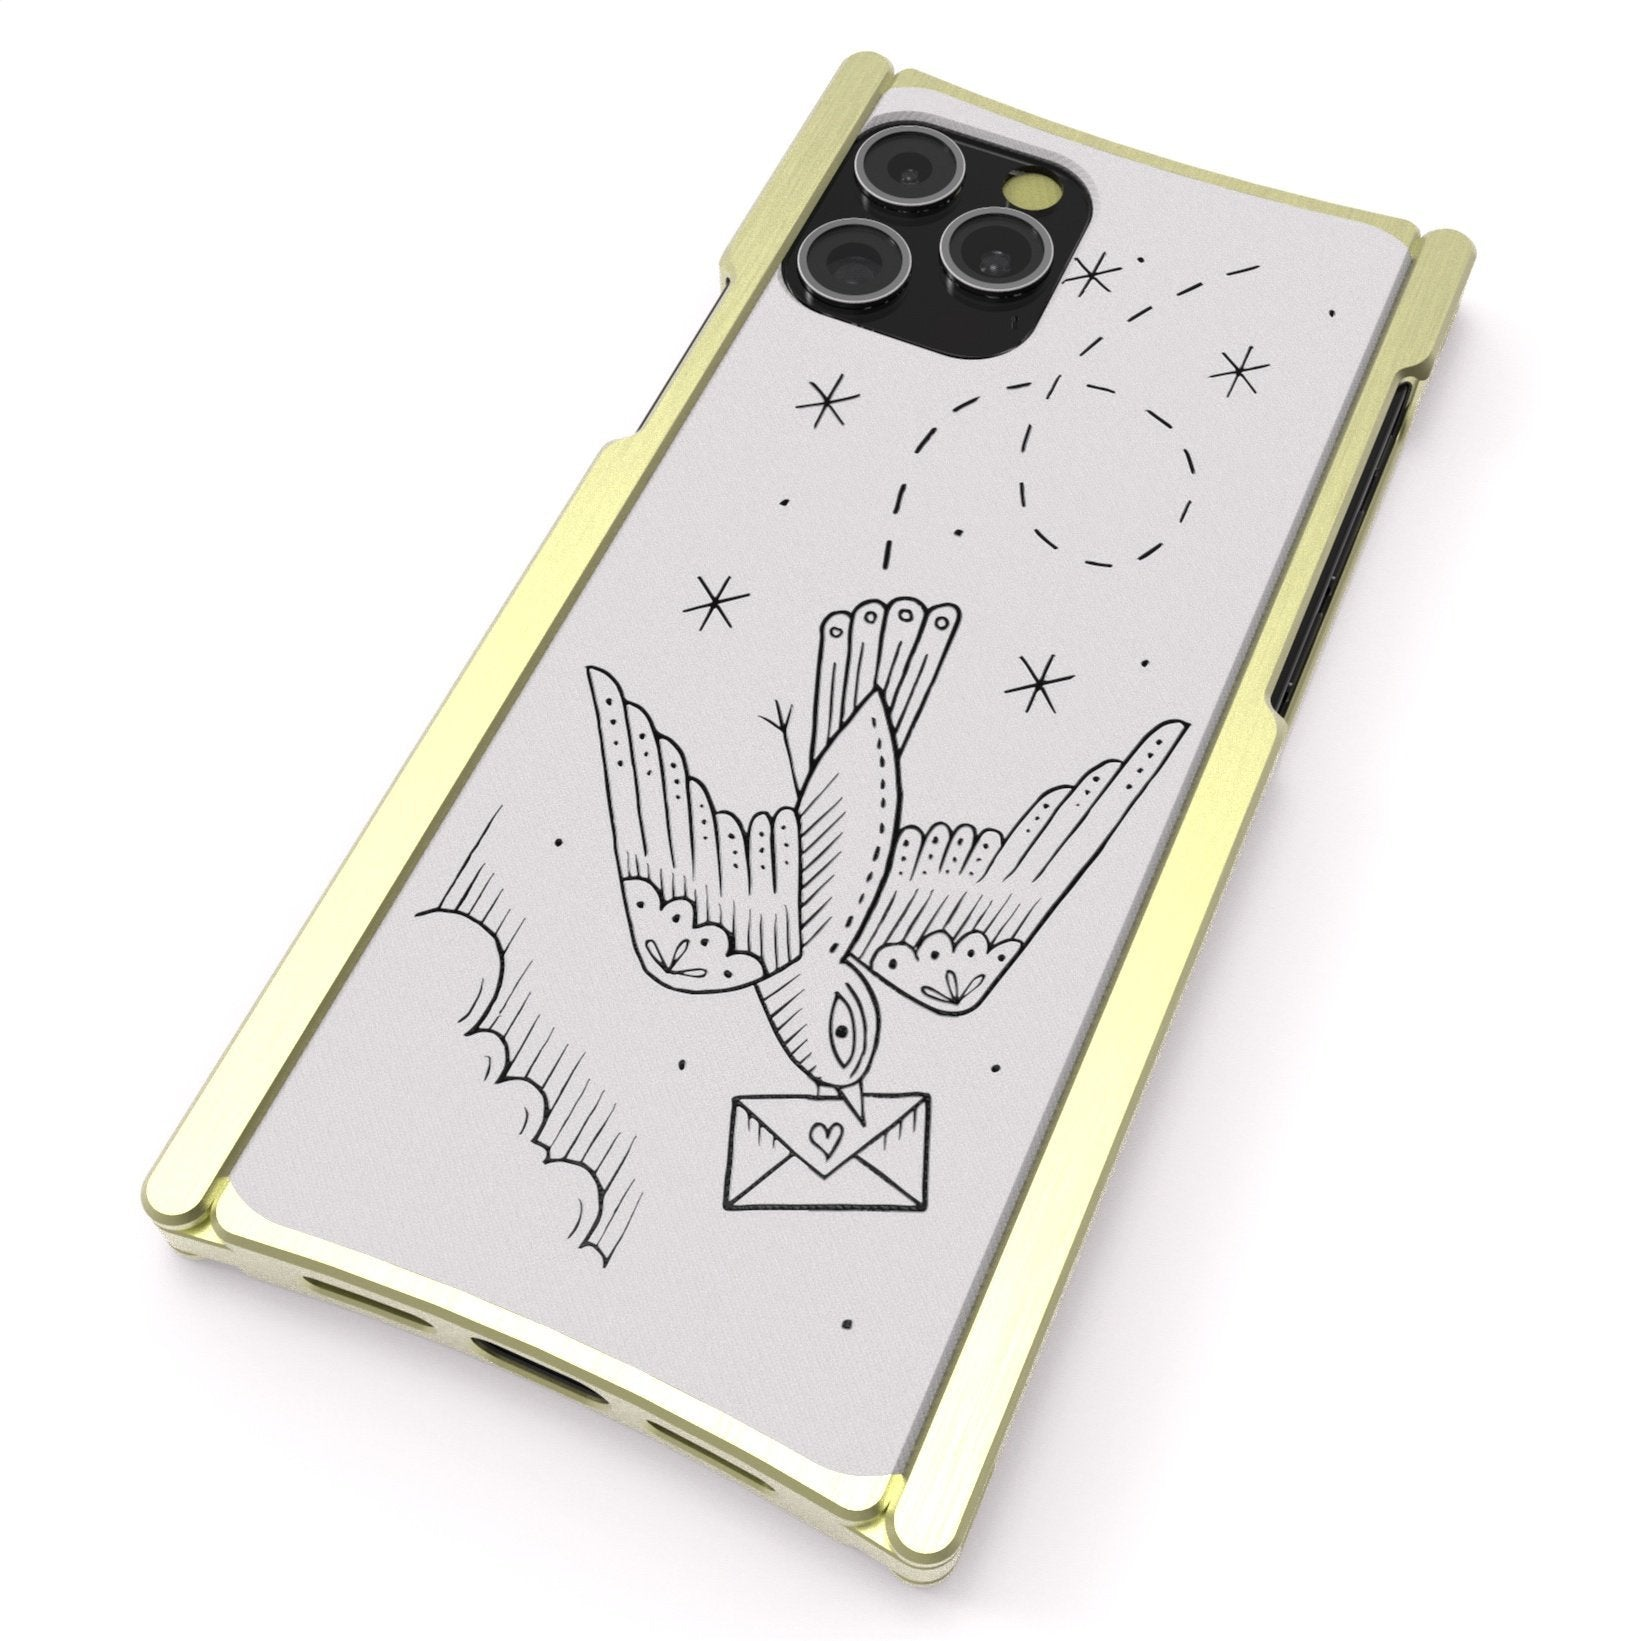 iPhone 12 Case, Duke Riley, Carier Pigeon, Artist Edition Europa 12 Pro Brass and White G10